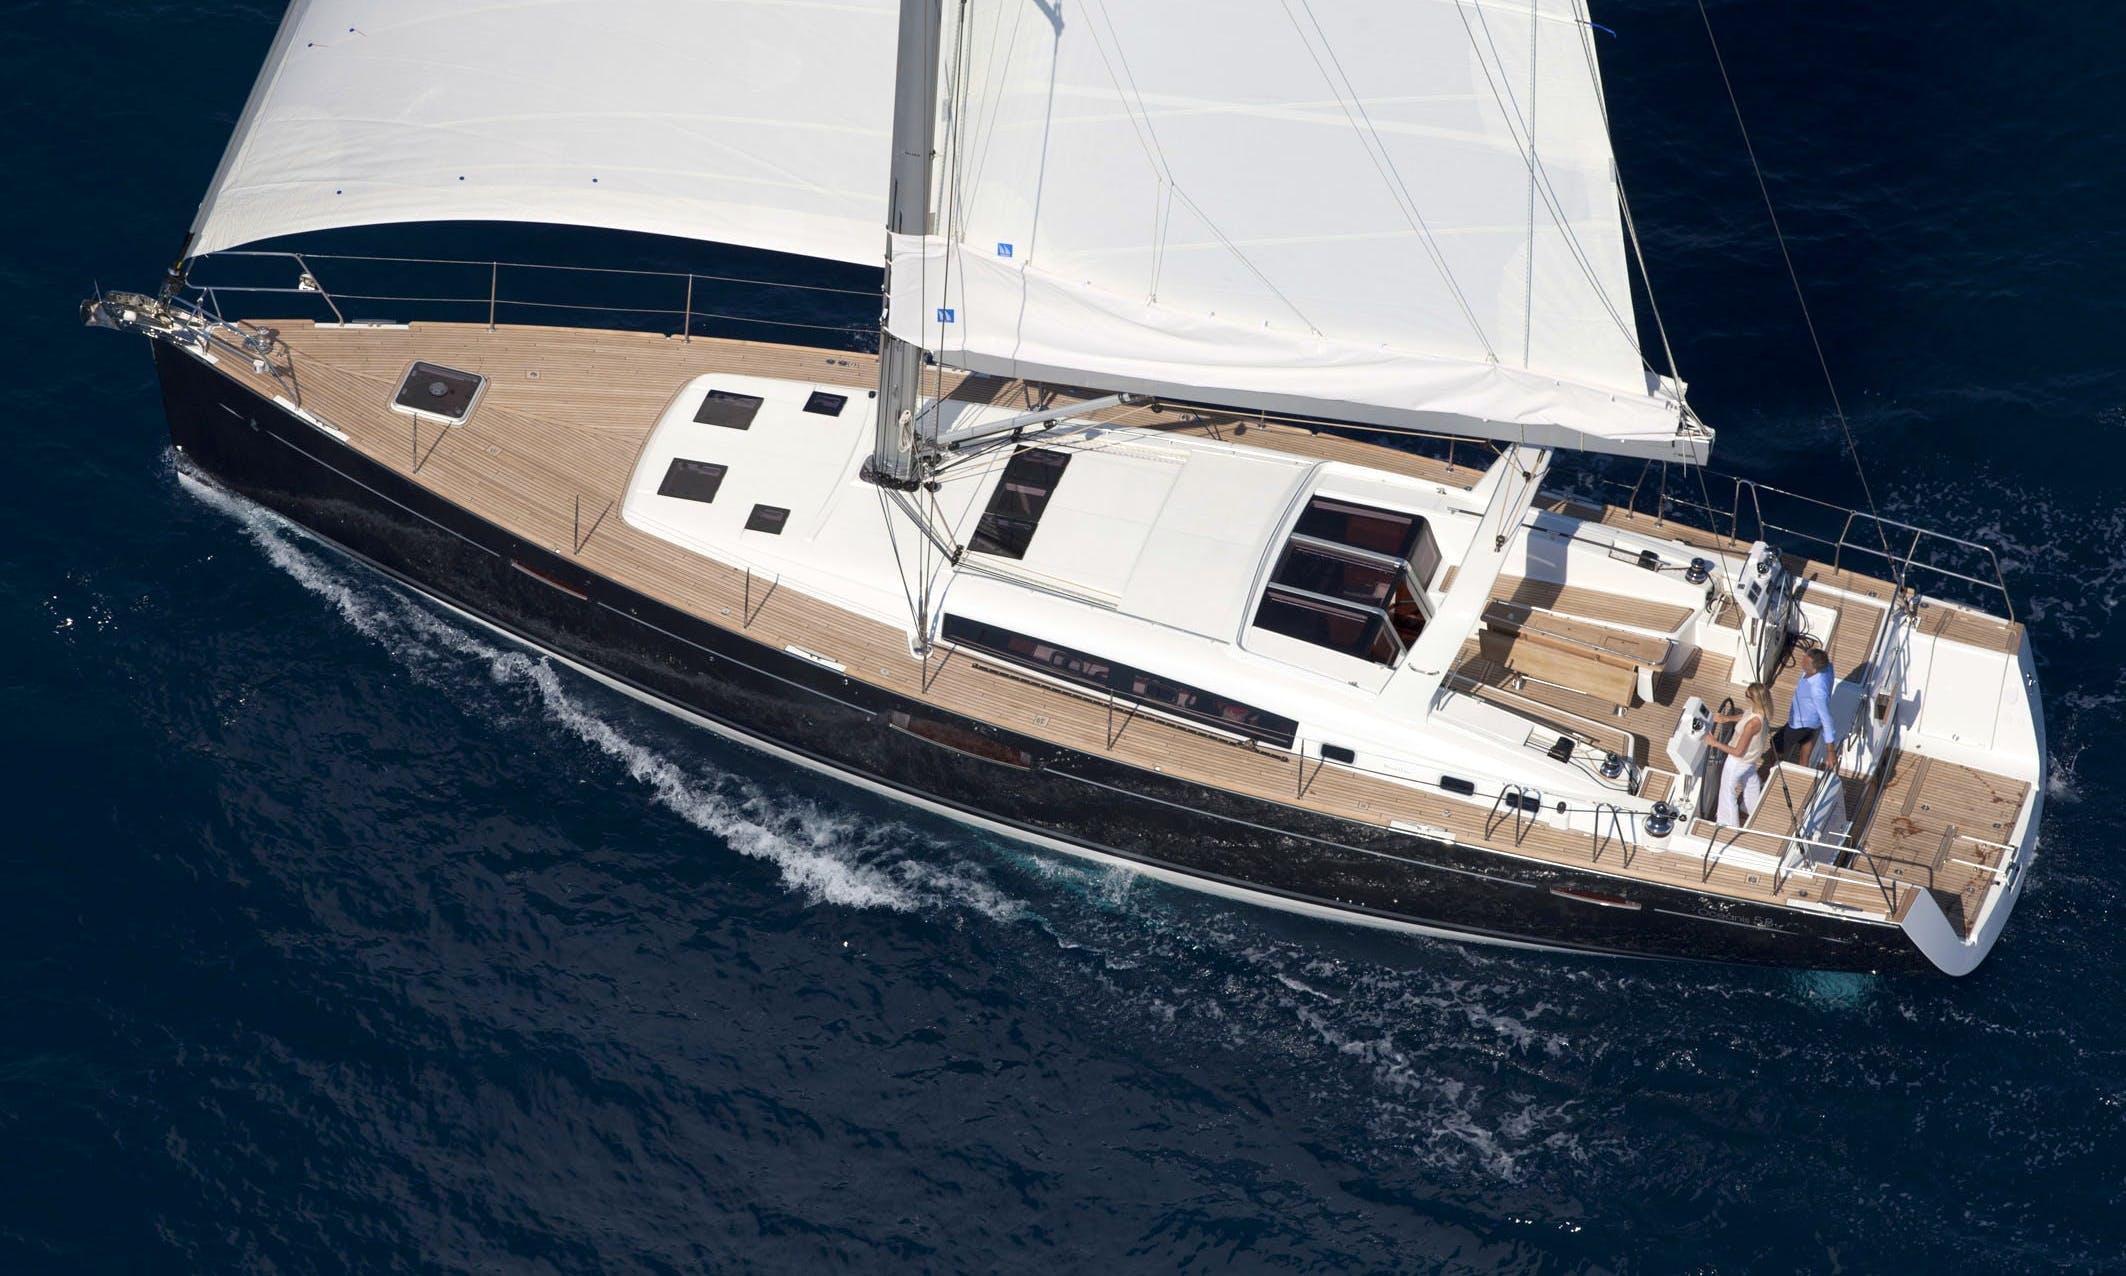 Luxury Cruiser 'OCEANIS 58' Charter in Haute-Normandie